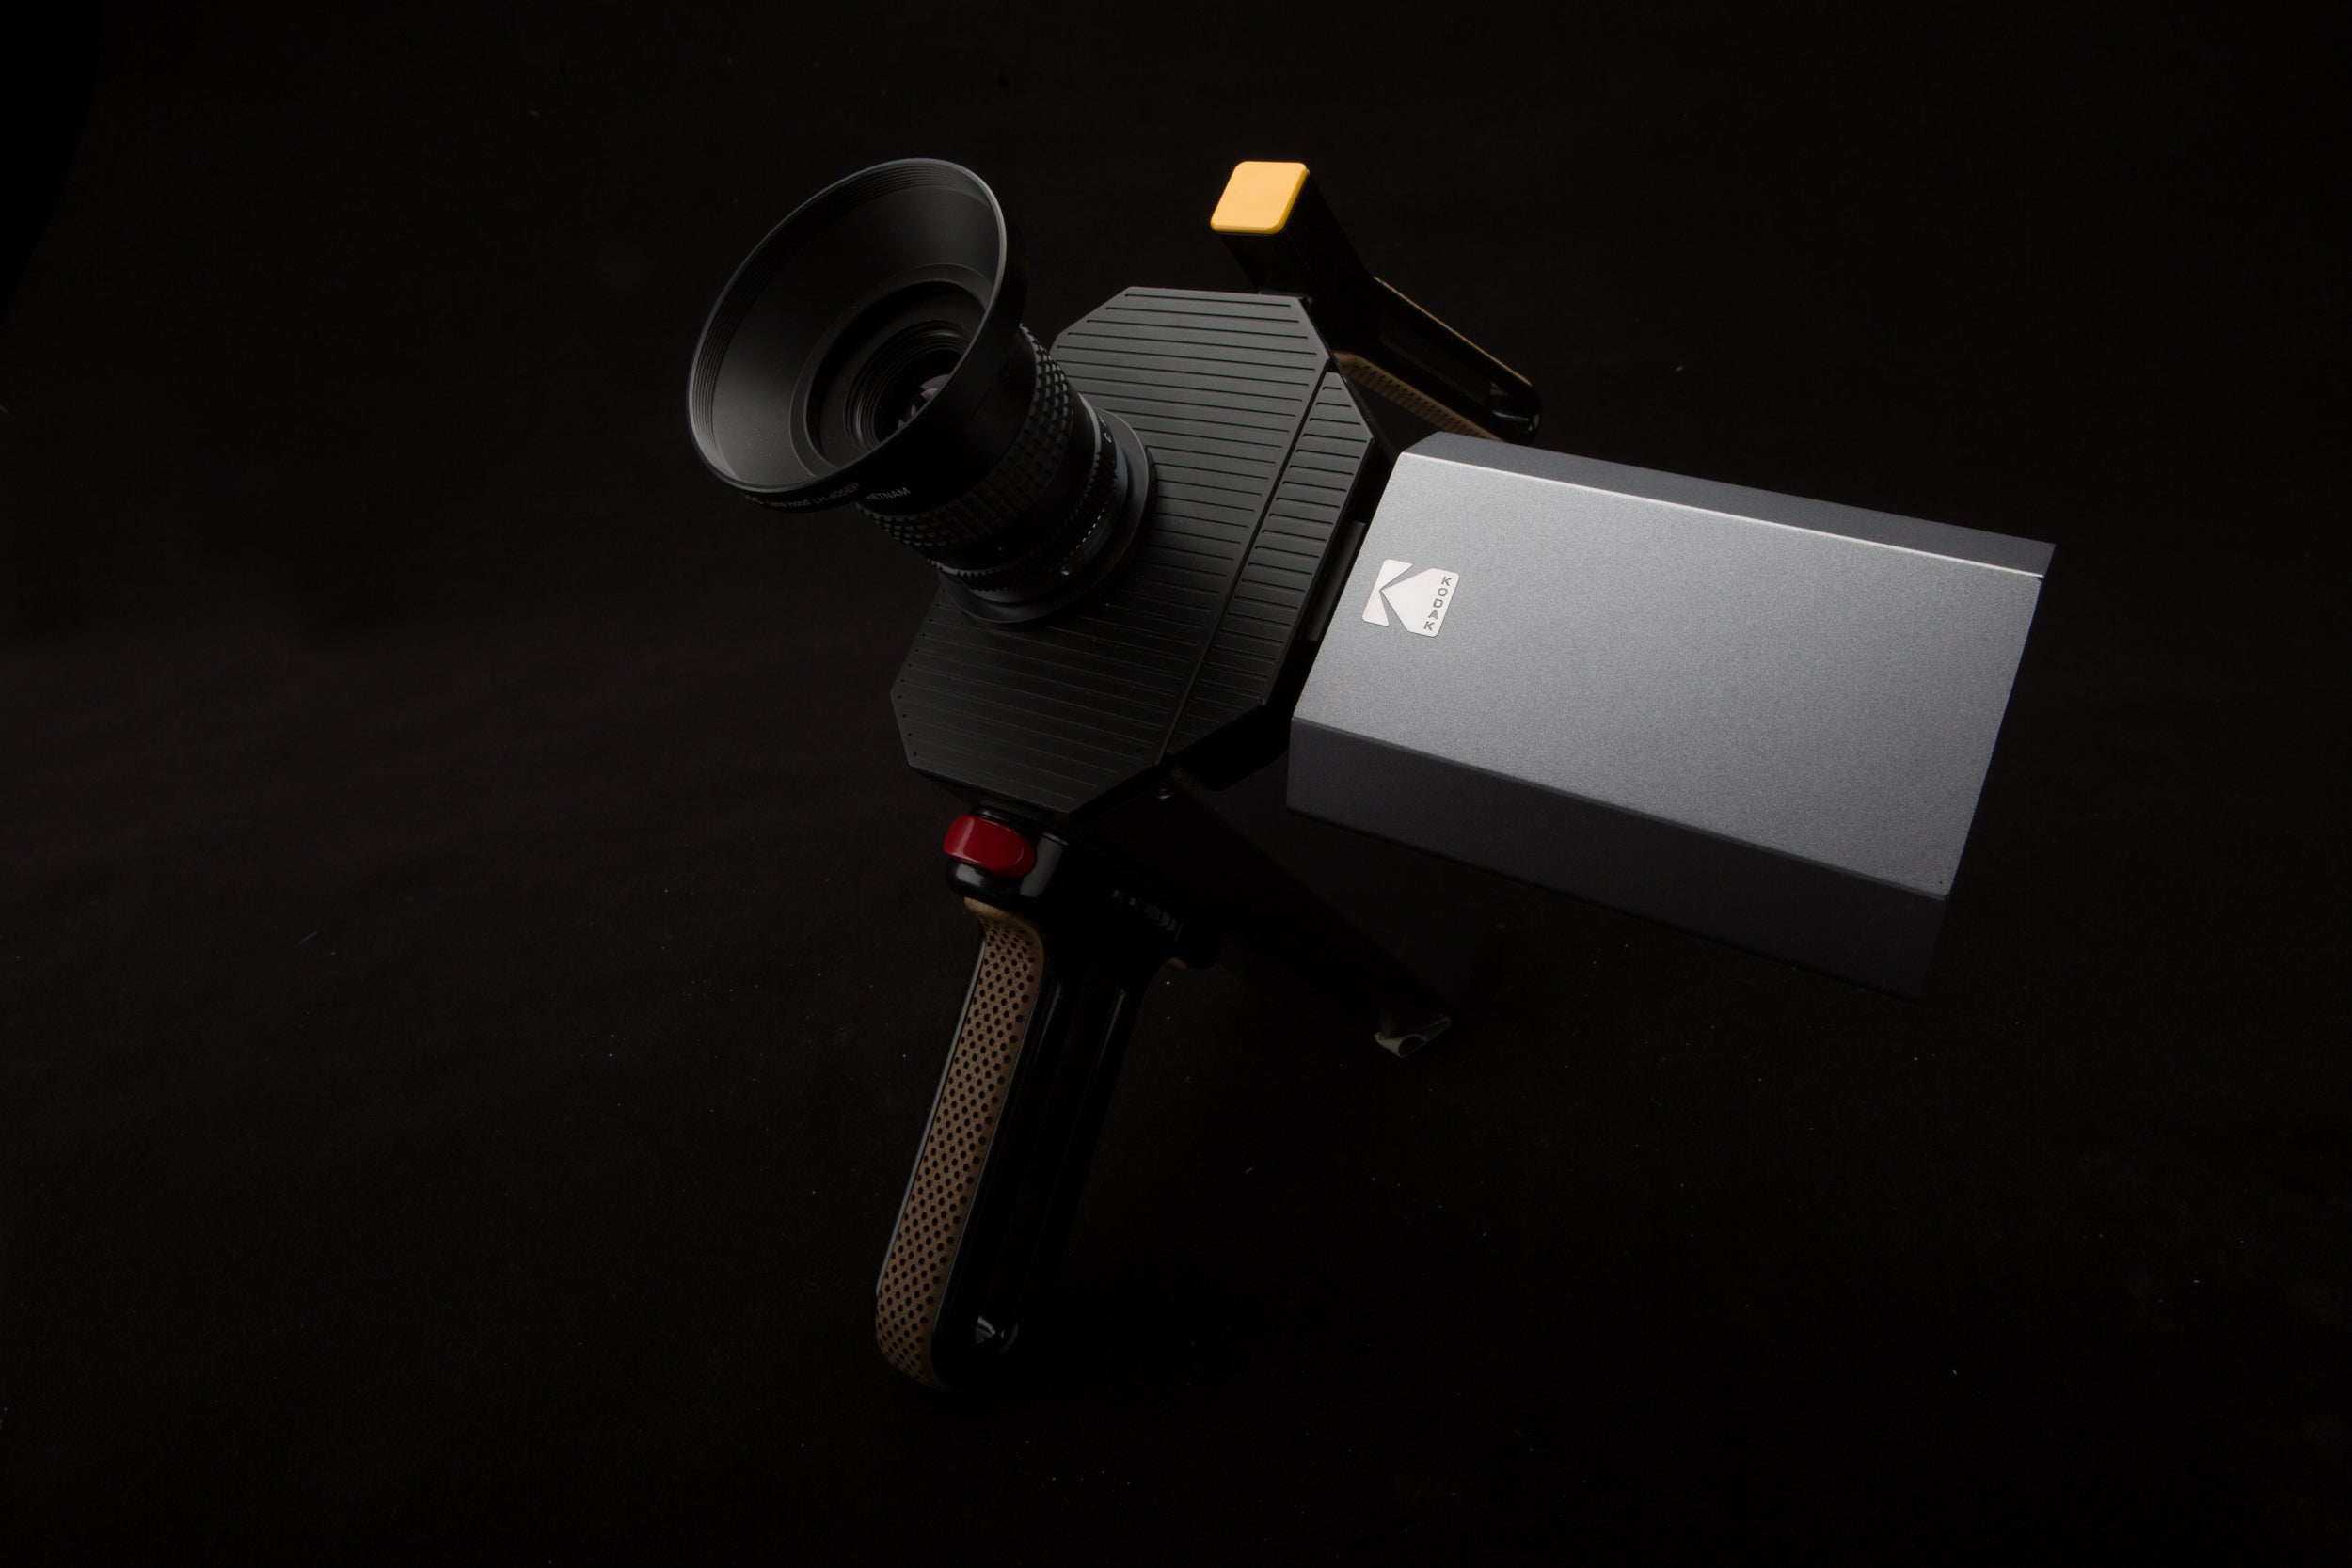 I'm Sorry, Kodak Wants How Much For Its New Super 8 Camera?